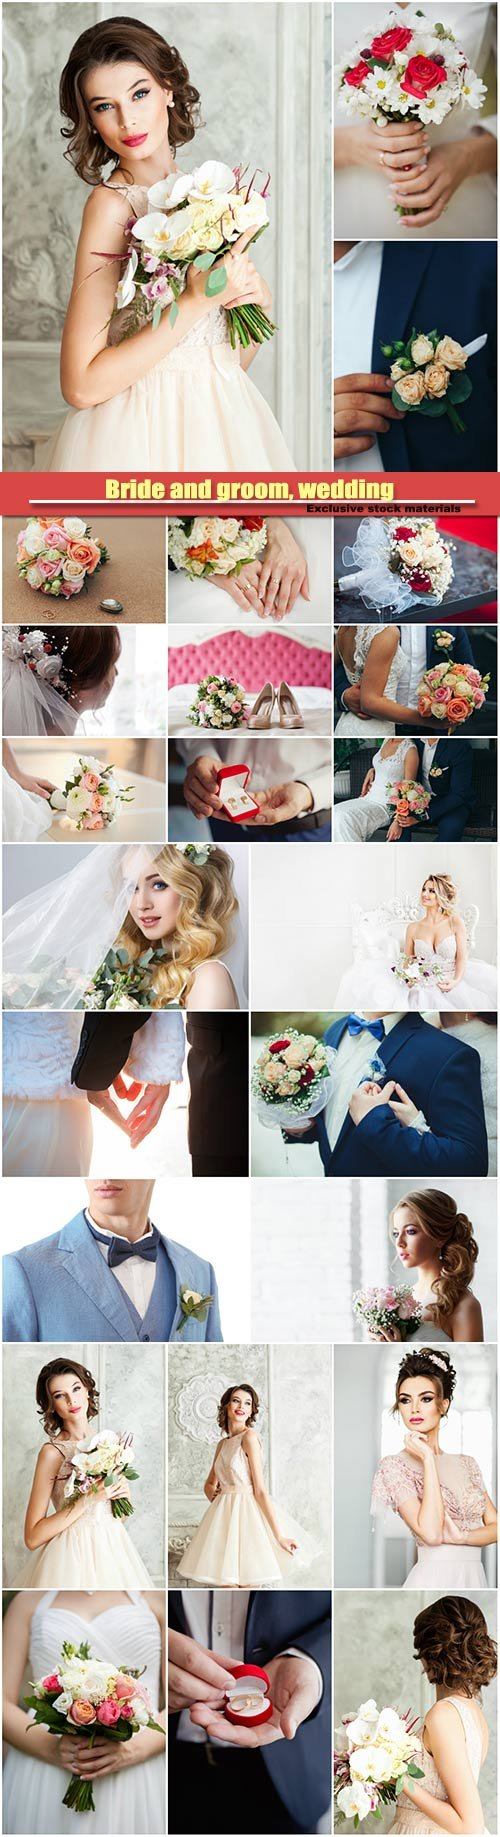 Wedding bouquet in the hands of the bride, bridegroom holds wedding bouquet